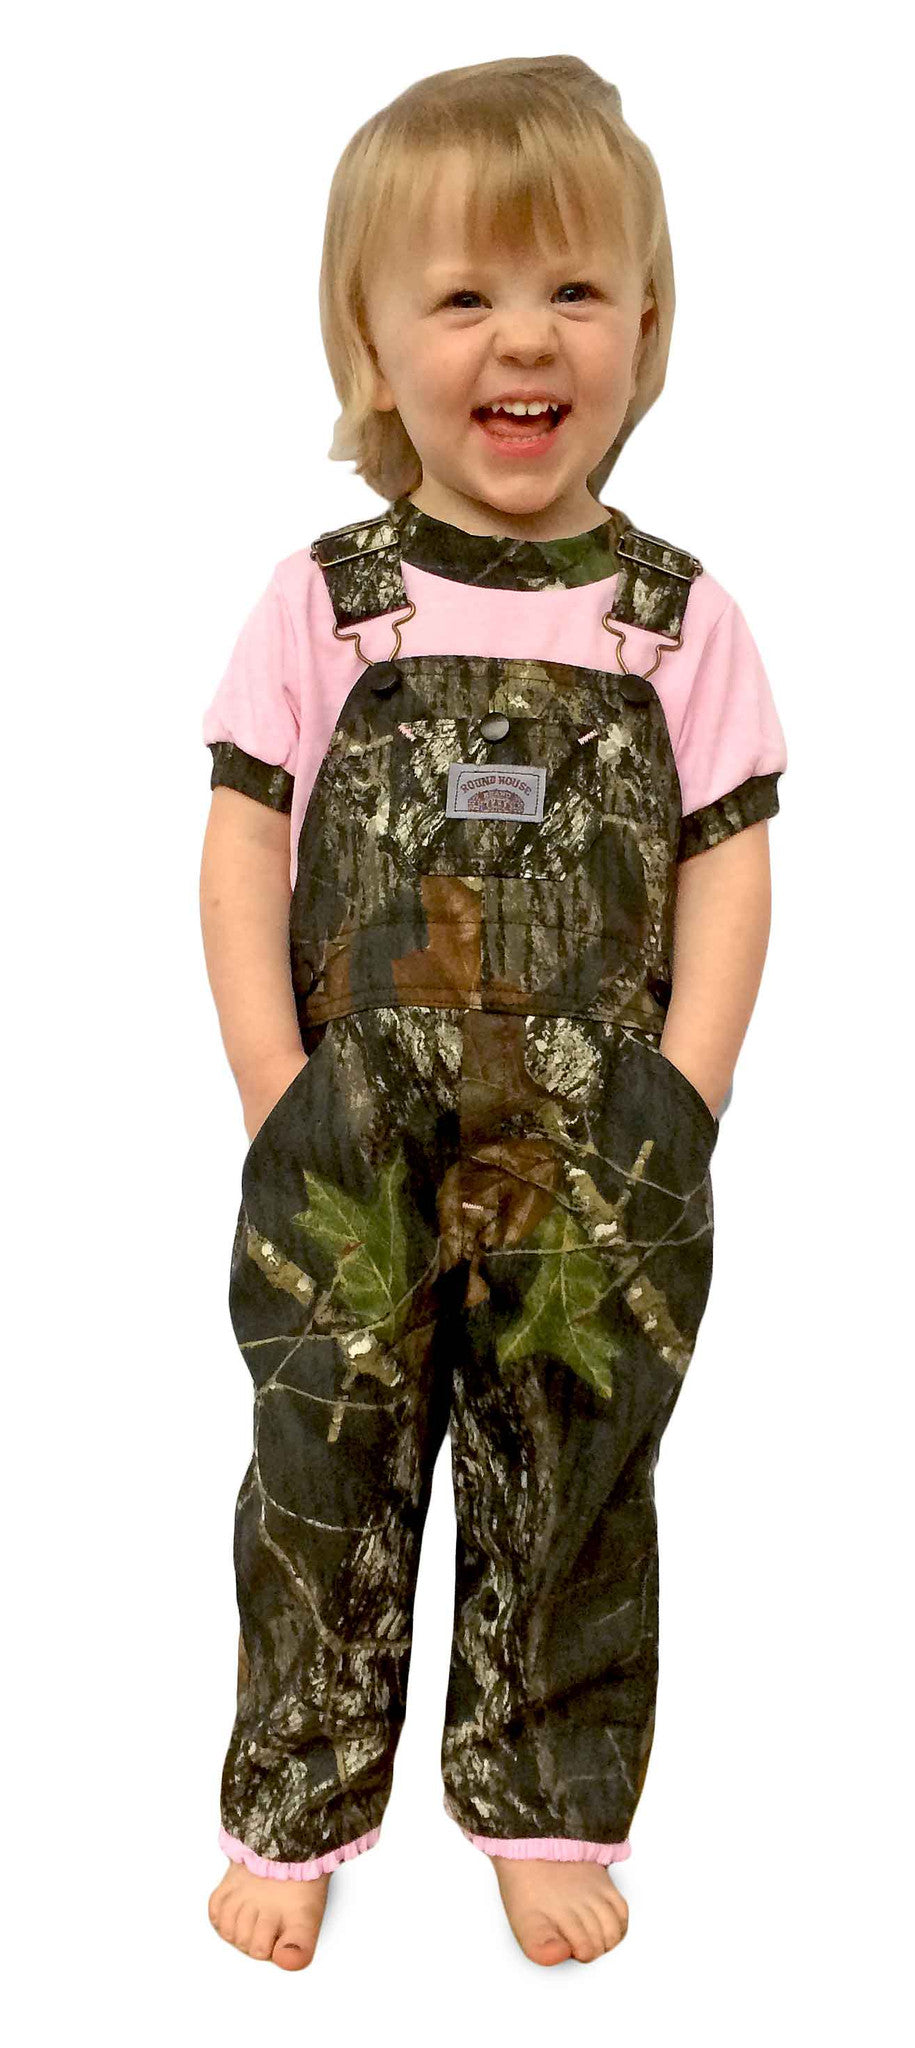 #428 Premium Pink Ruffle BIB OVERALL Girls in Realtree or Mossy Oak Break-Up Made in USA